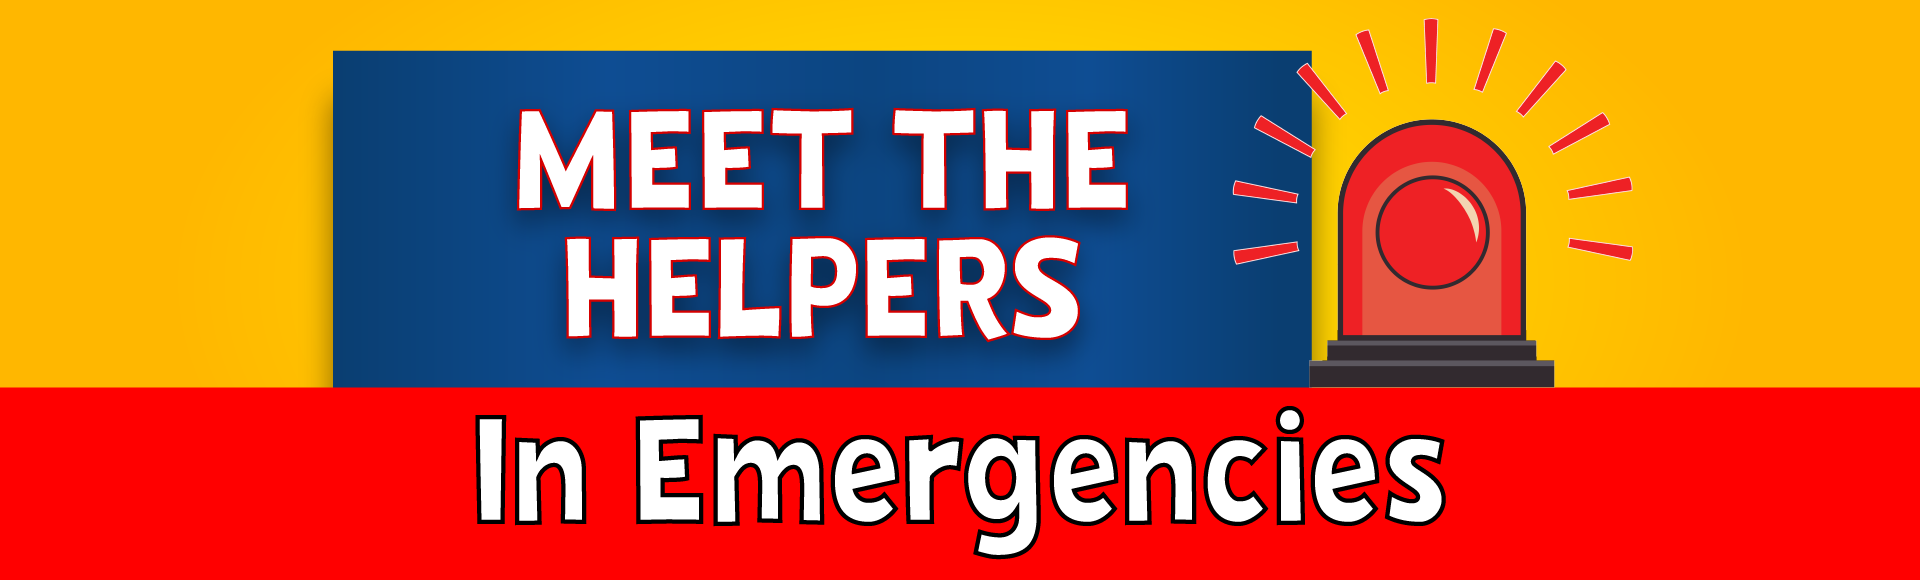 Meet The Helpers in Emergencies